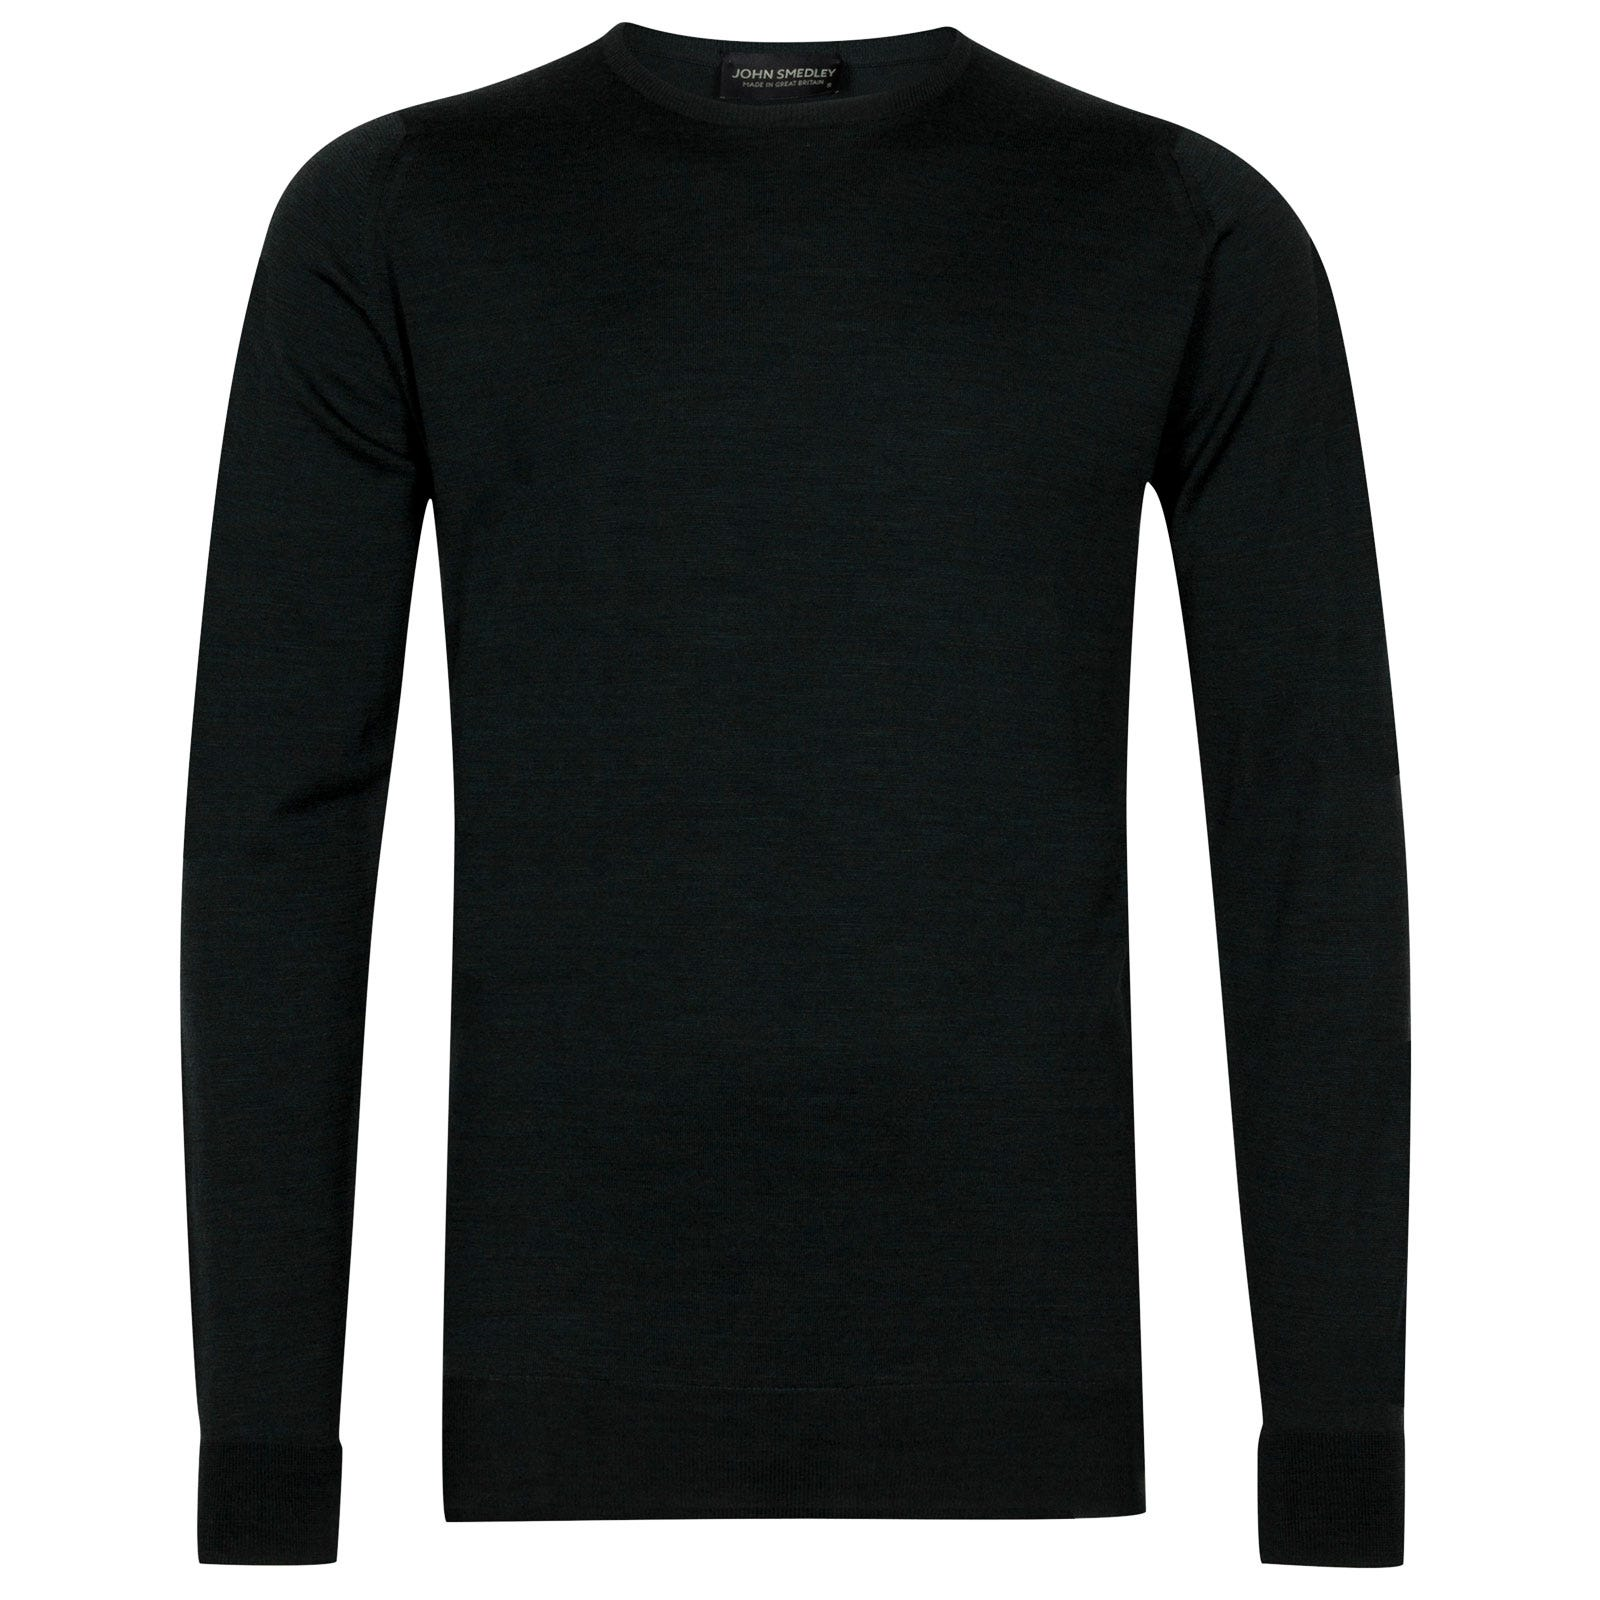 John Smedley marcus Merino Wool Pullover in Racing Green-L